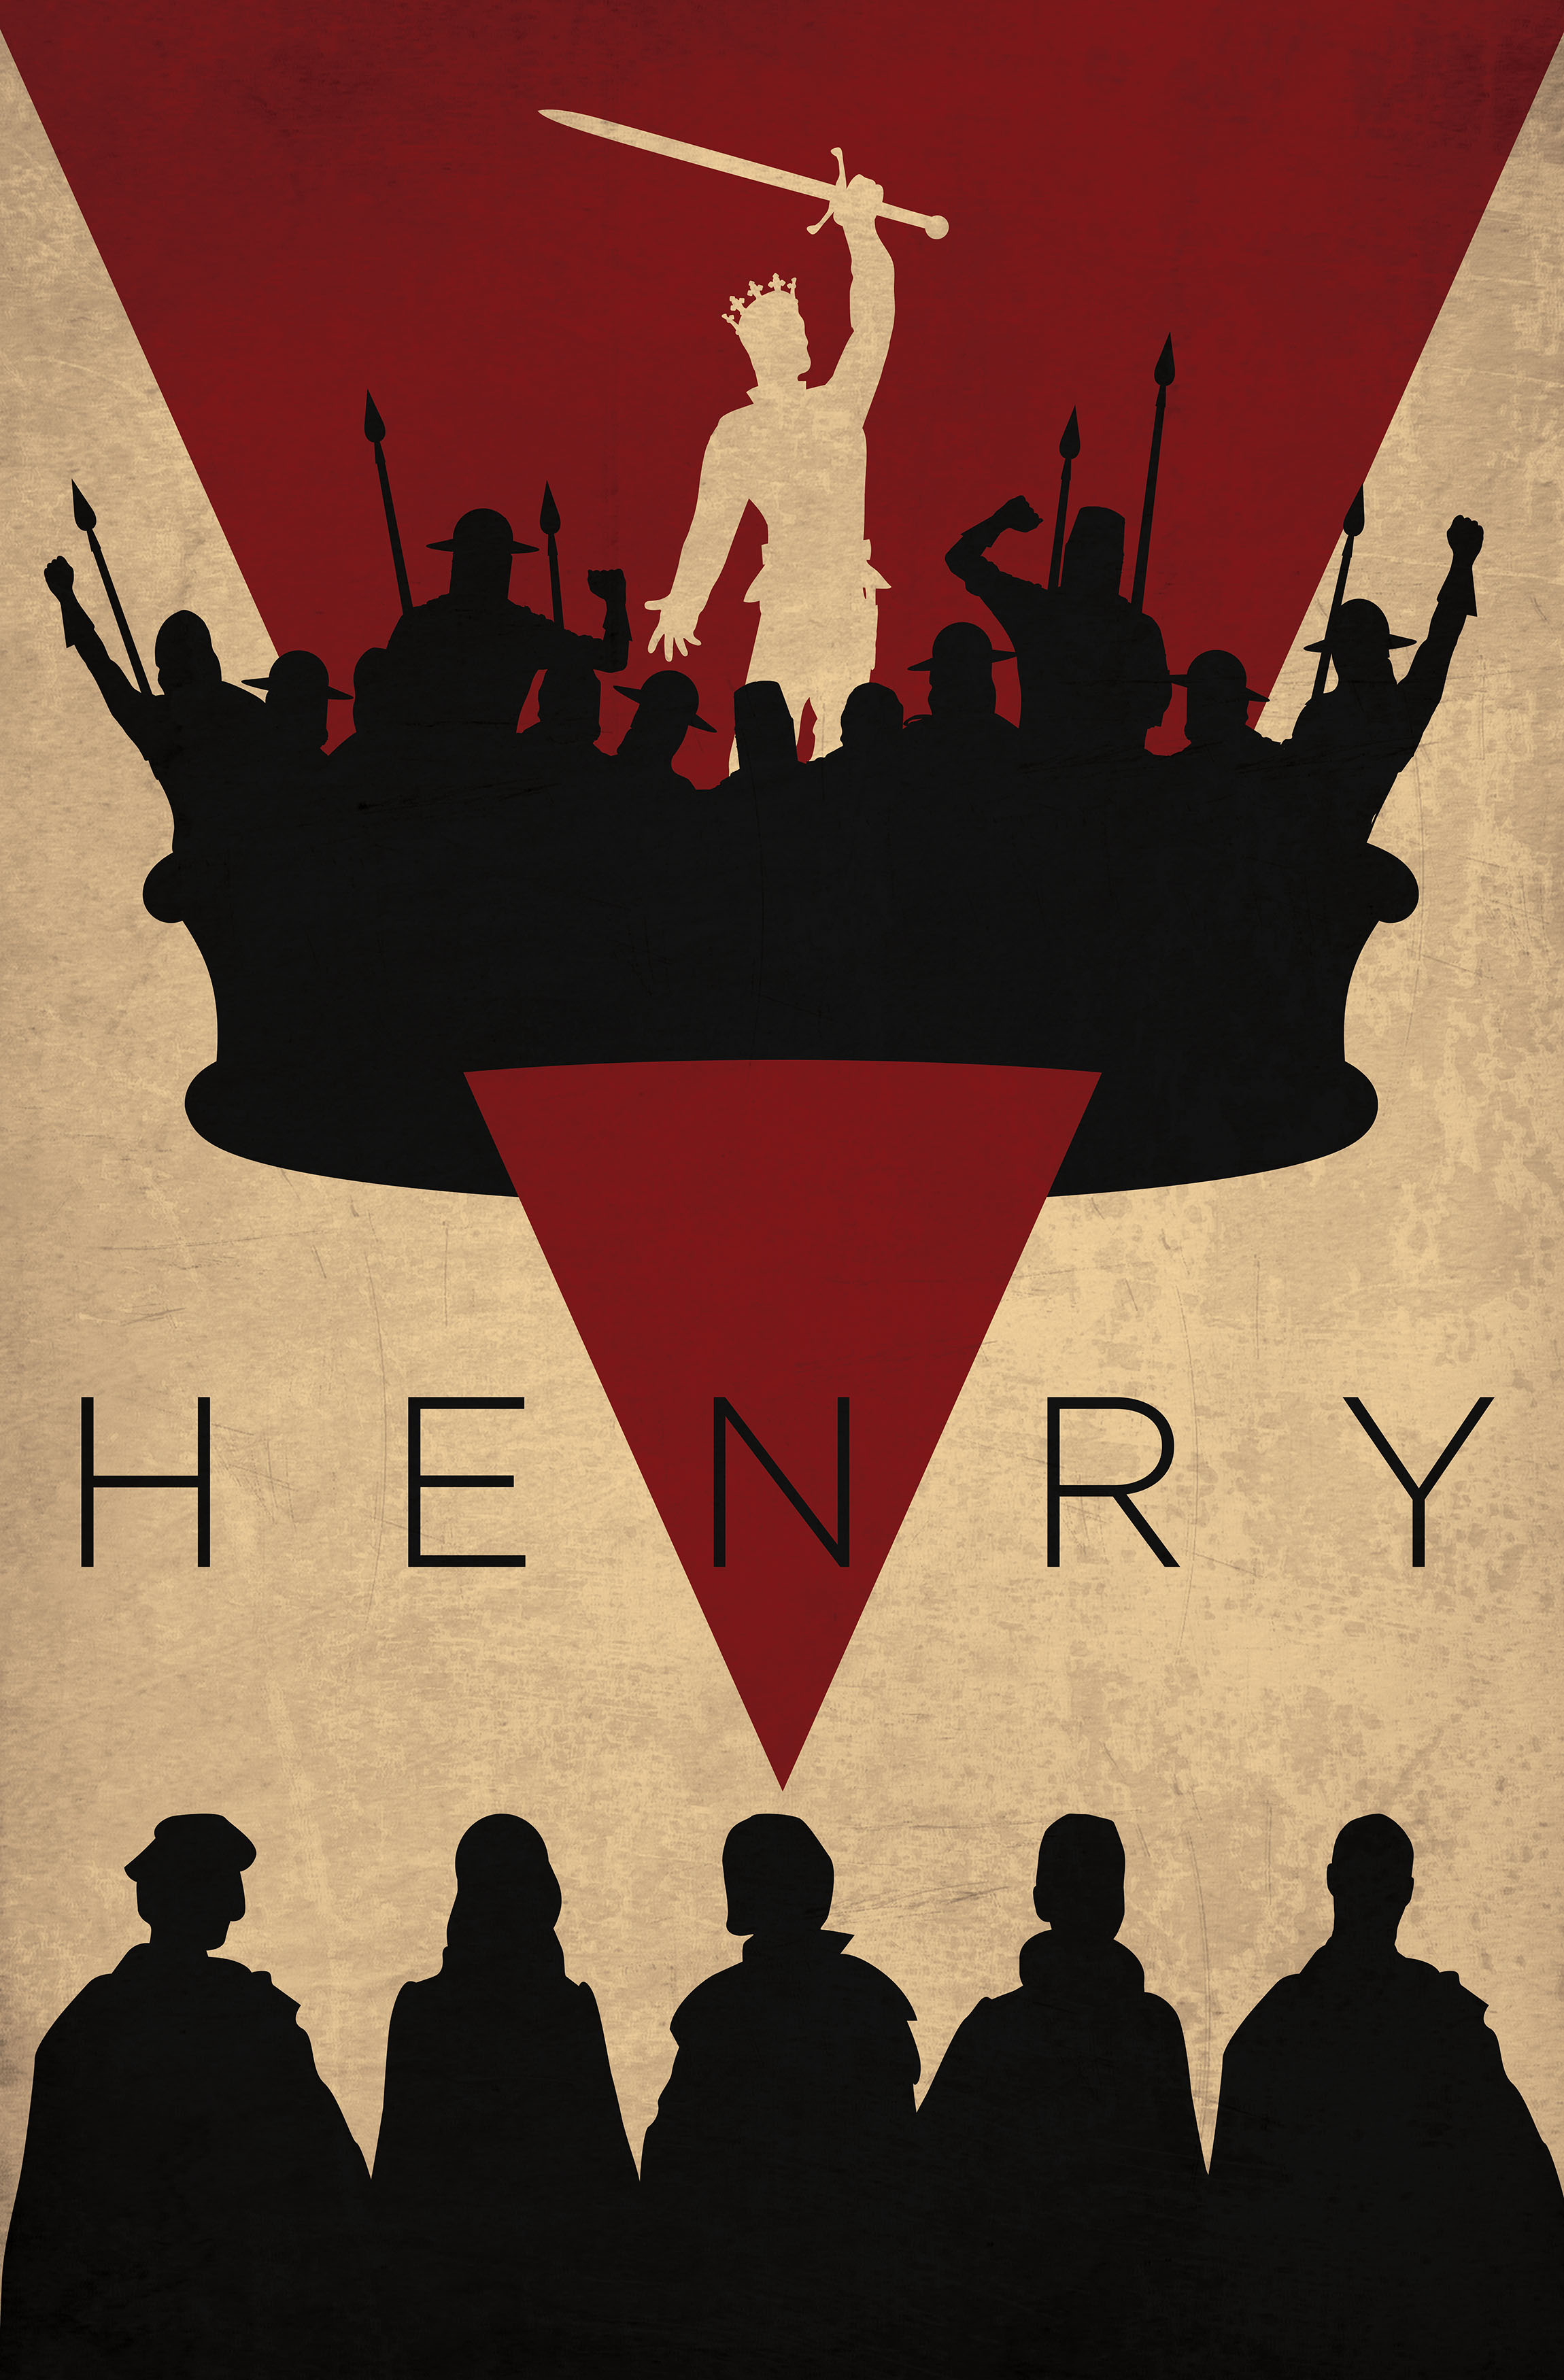 henry v Henry v literature essays are academic essays for citation these papers were written primarily by students and provide critical analysis of henry v.